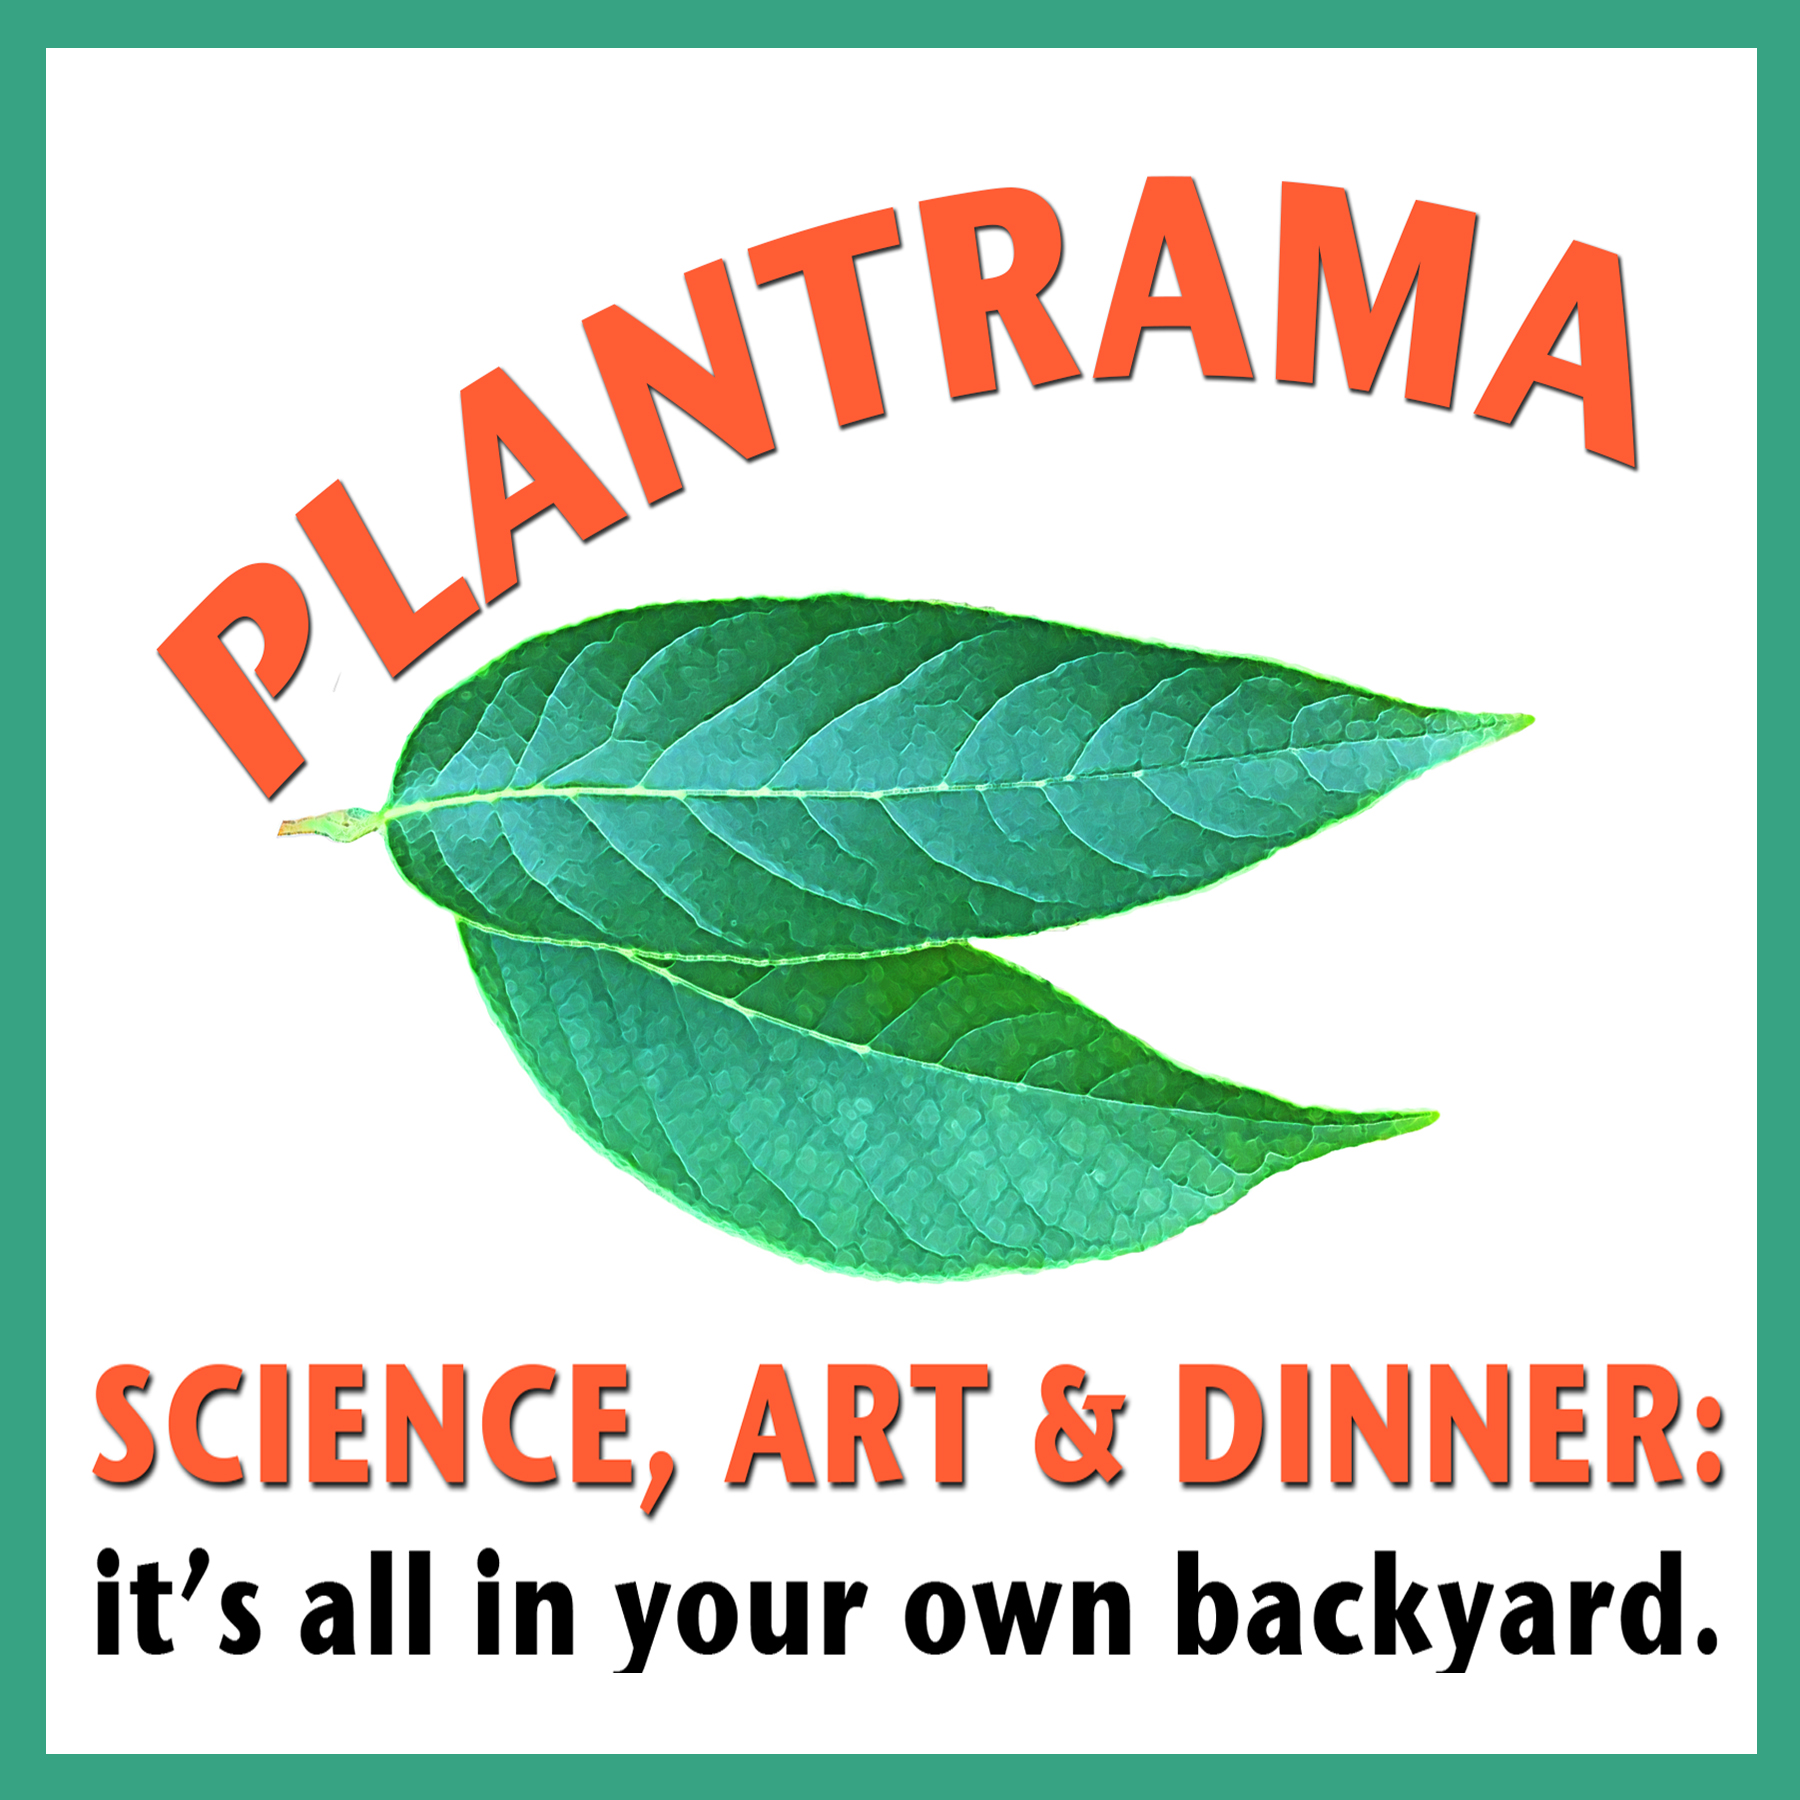 Plantrama - plants, landscapes, & bringing nature indoors show art